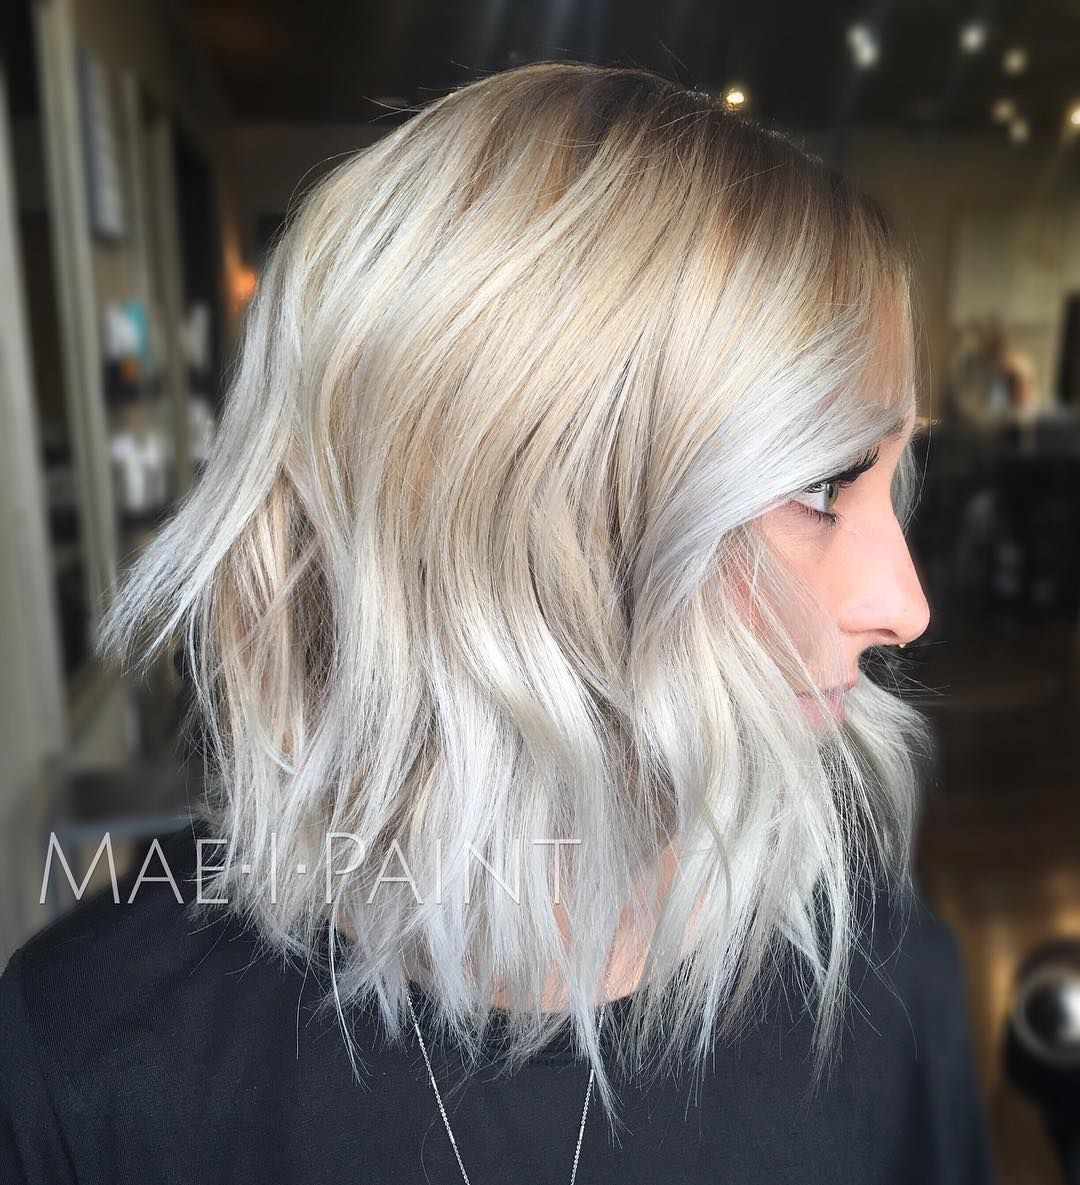 Icy blonde of the day  This girl has SO much hair itus unreal